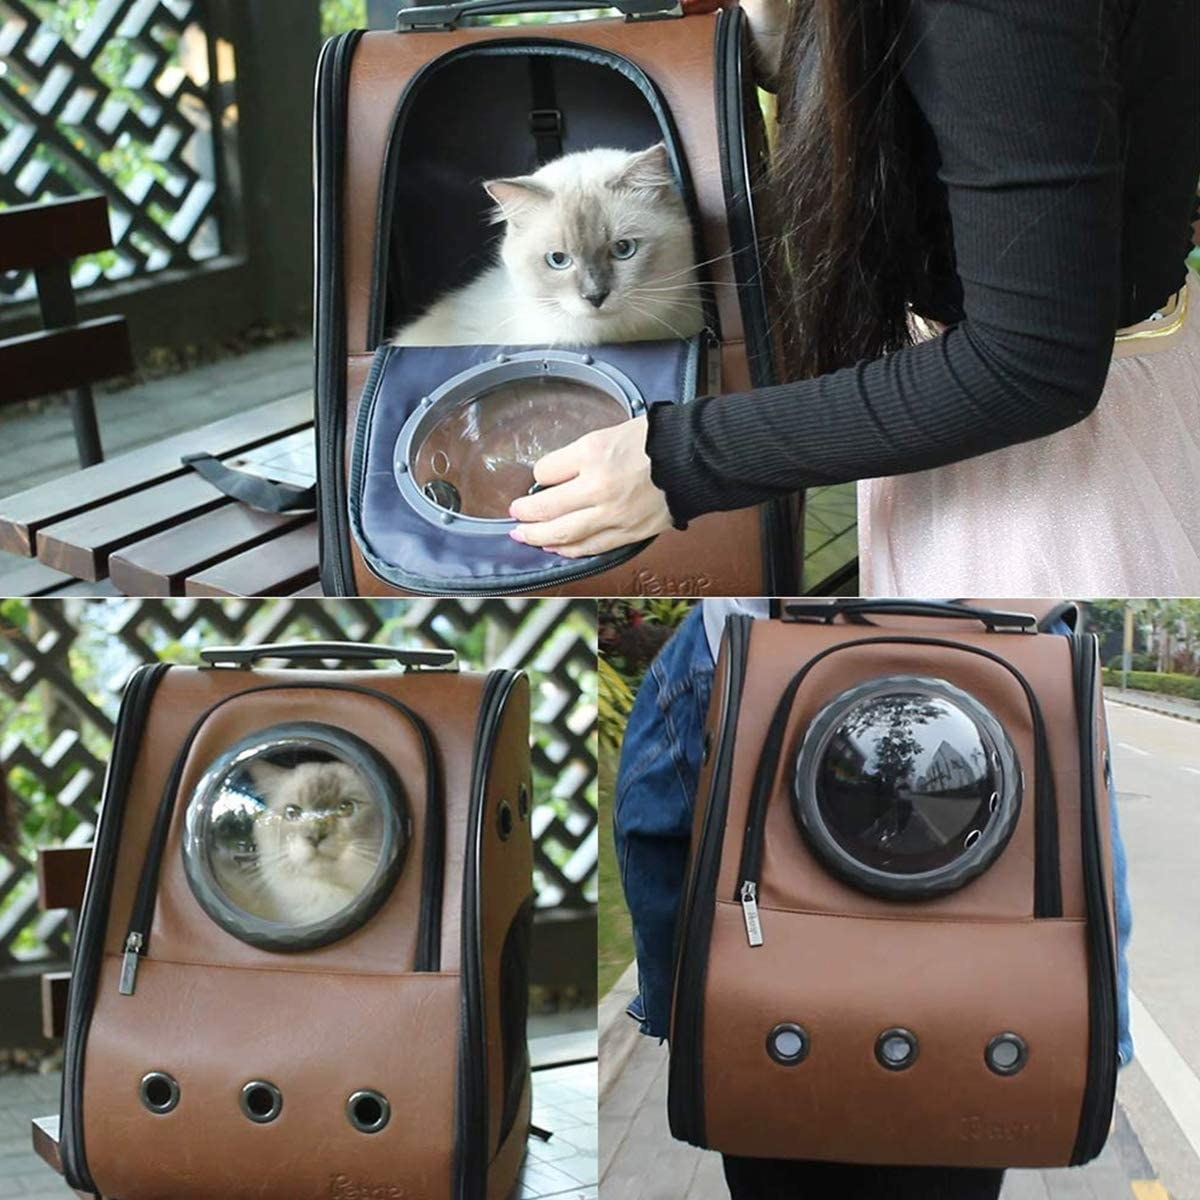 A person putting their cat into a large backpack that a small round window